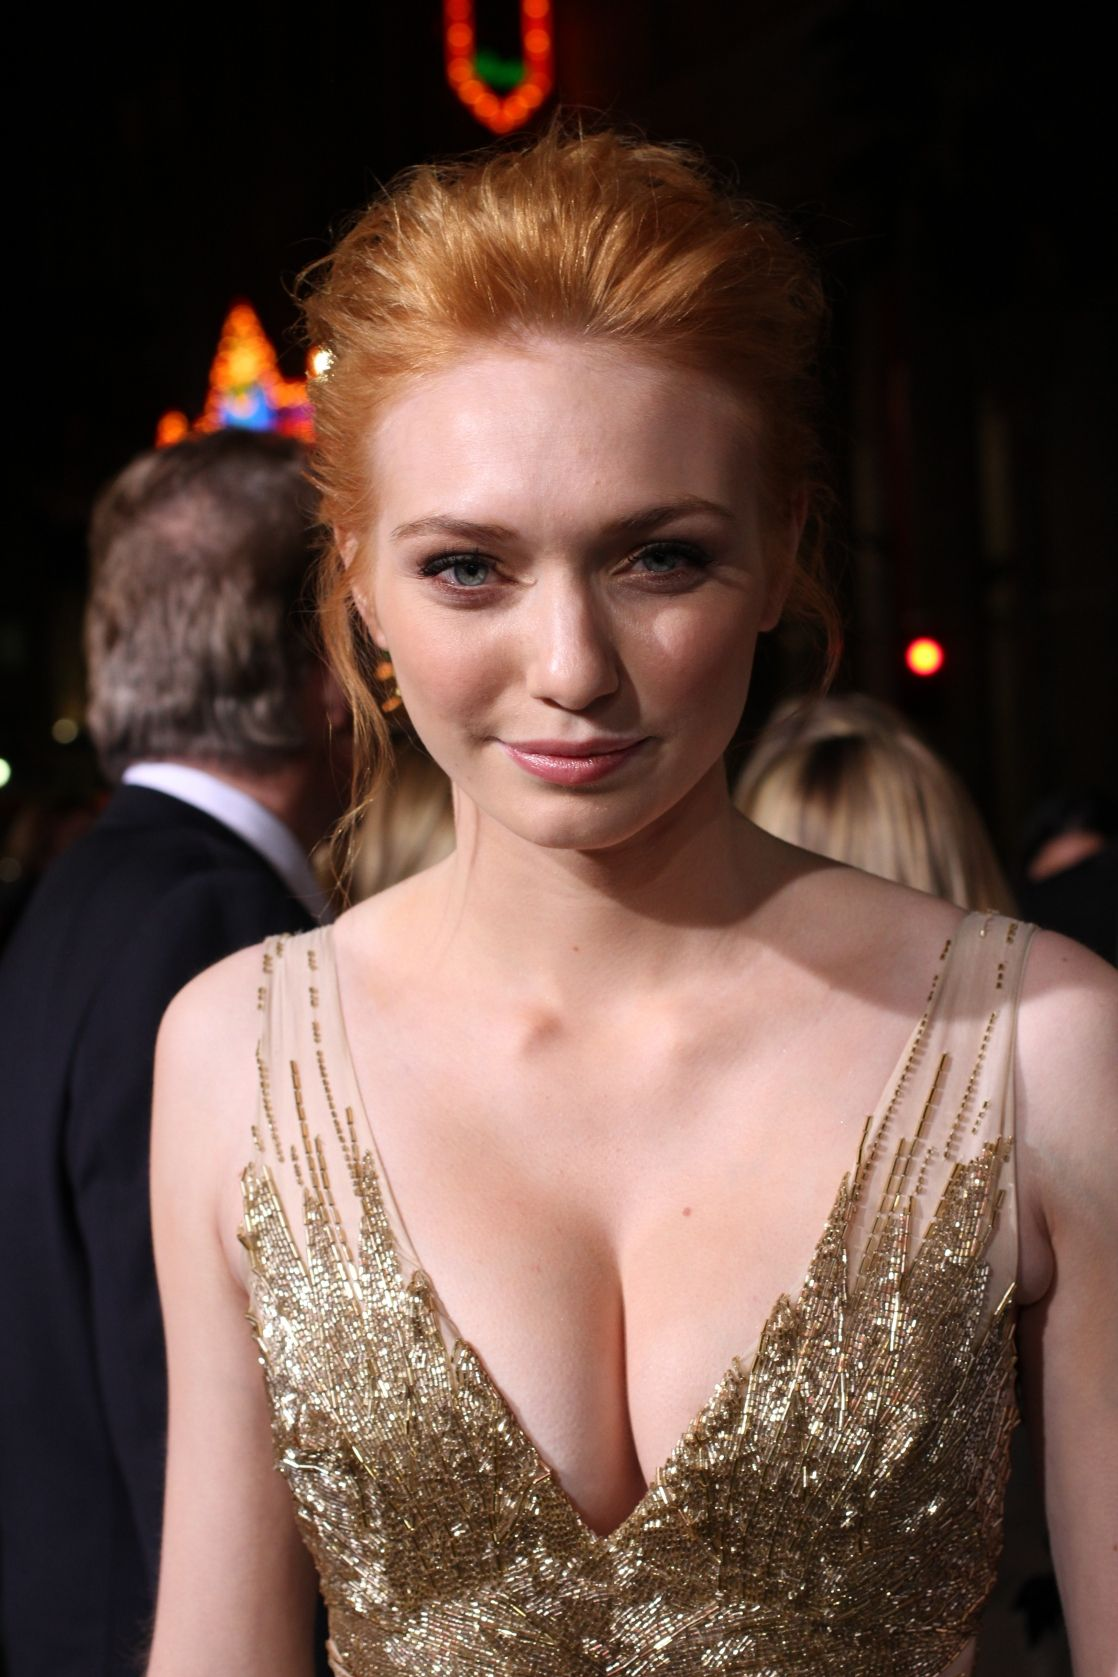 cleavage Hot Eleanor Tomlinson naked photo 2017